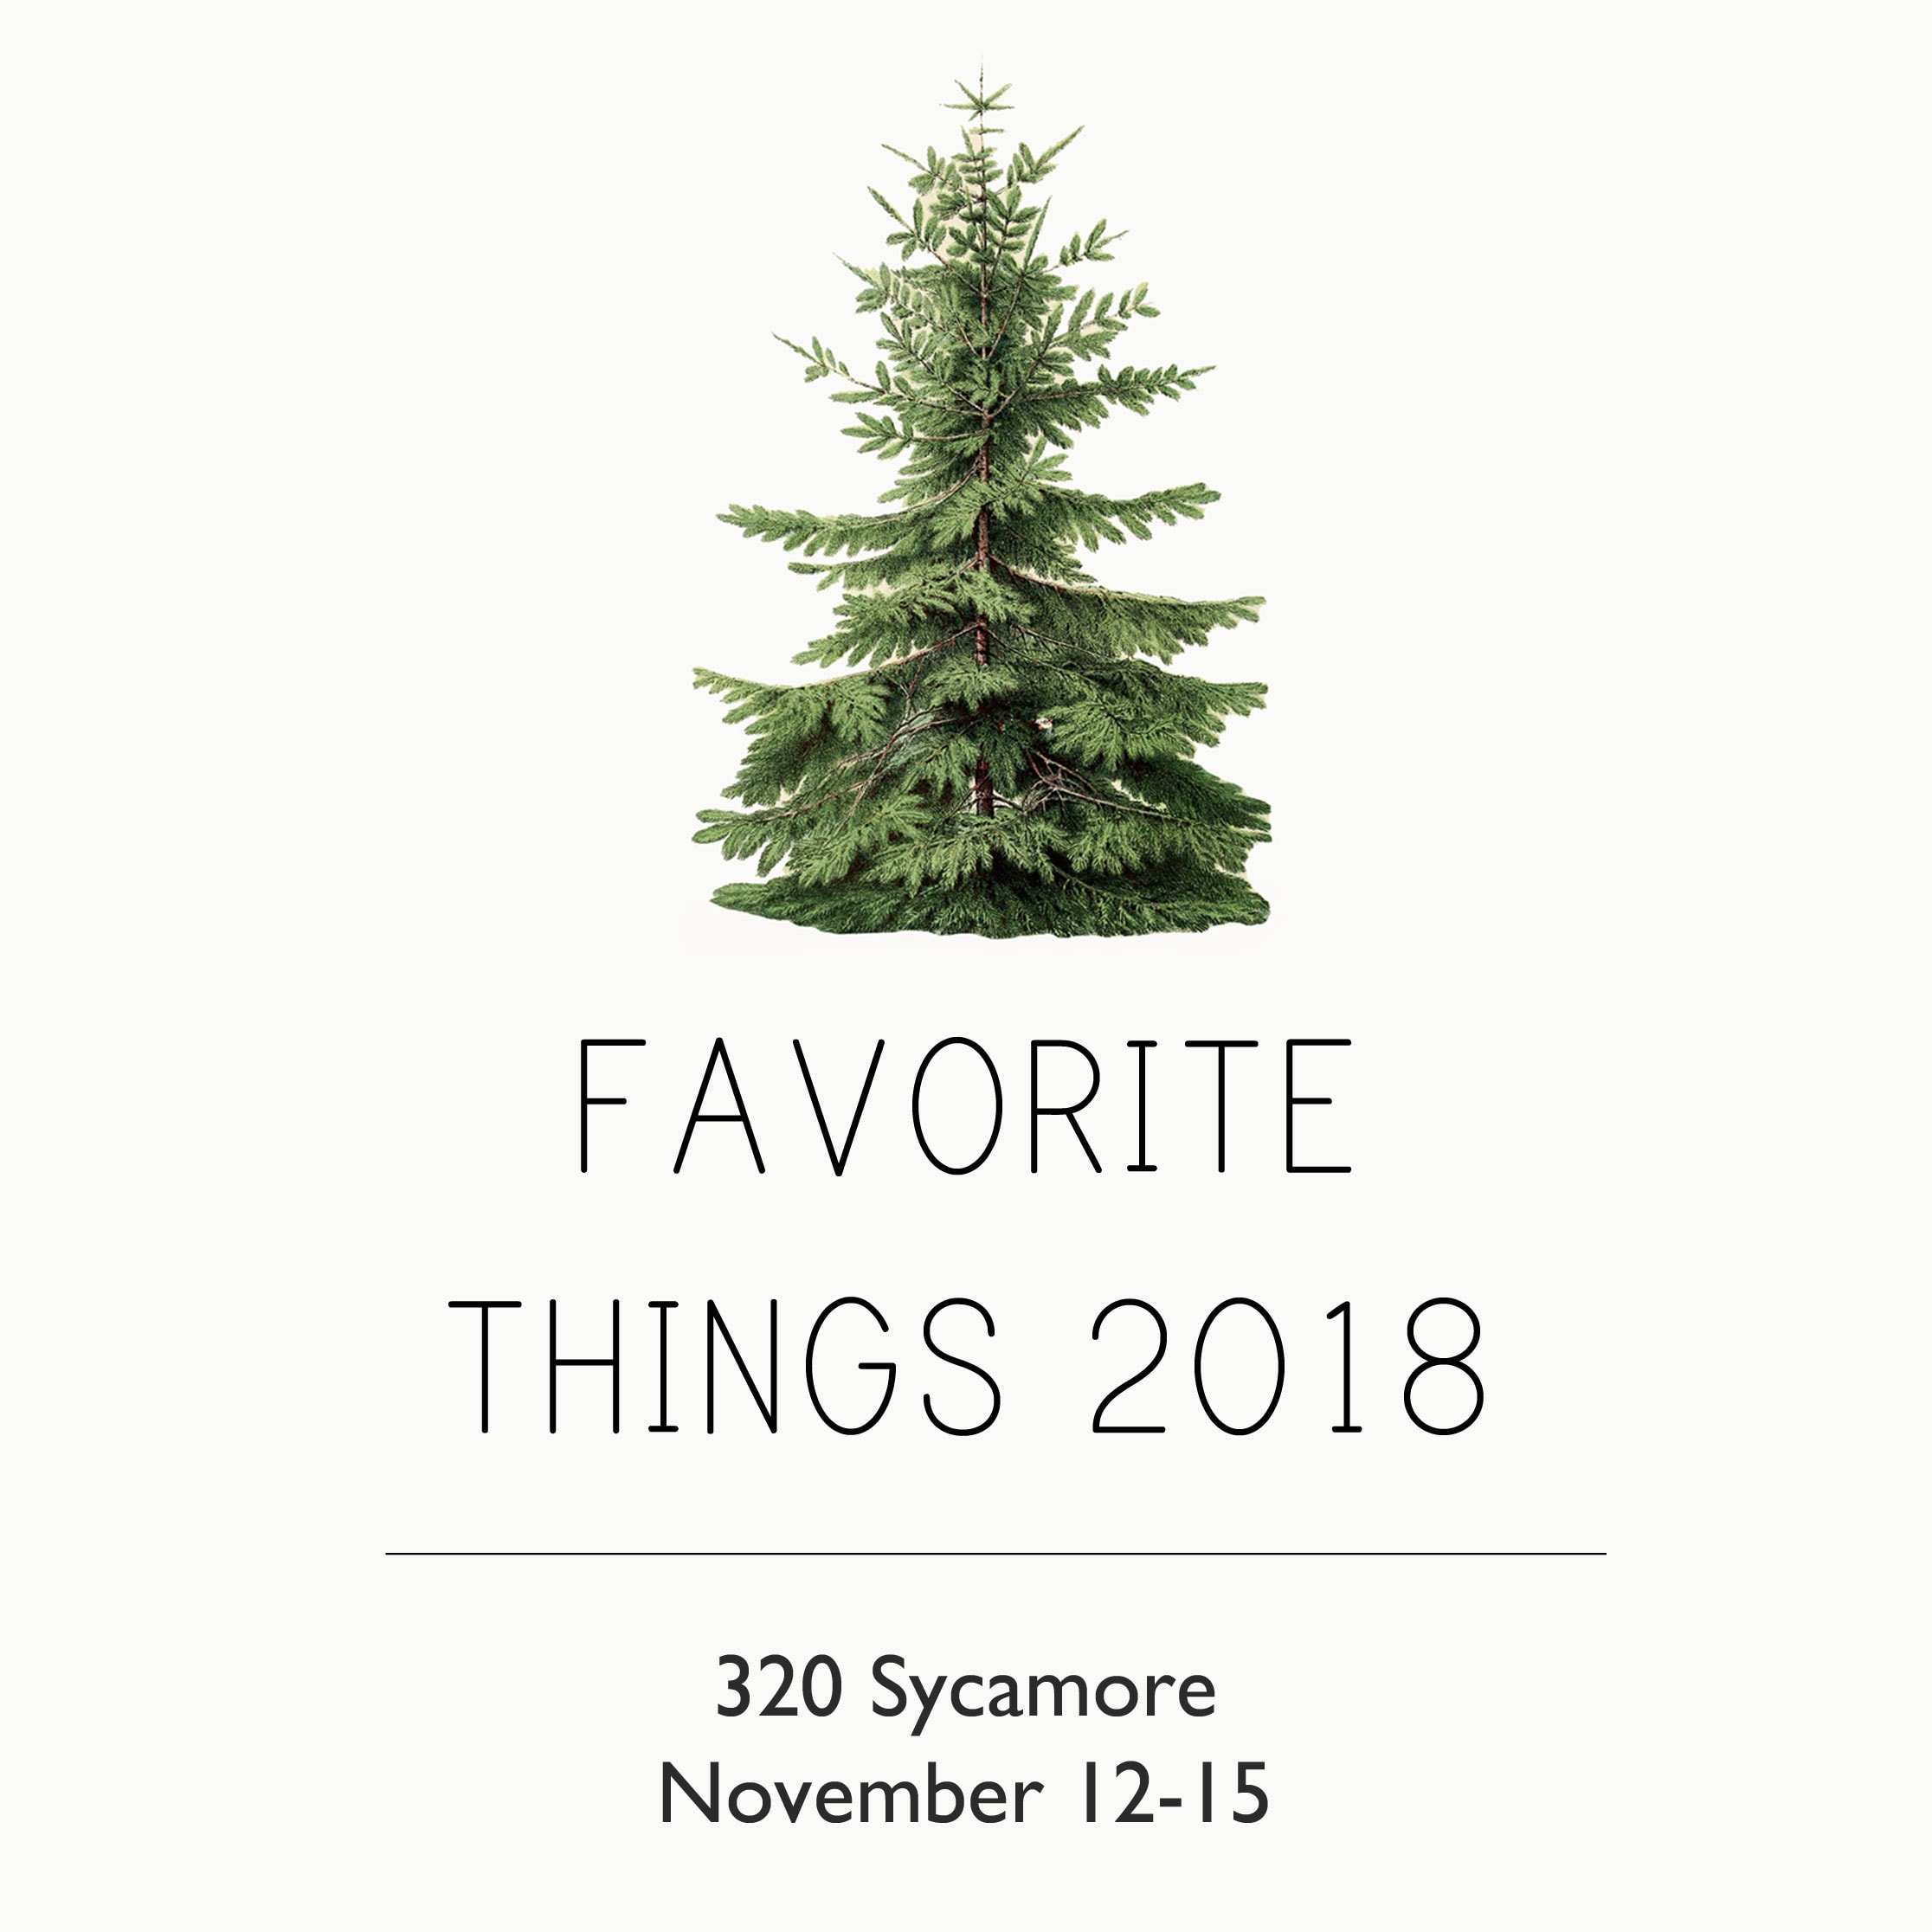 All of our favorite home decor staples!! We love 320 Sycamore's favorite things blog hop, check out our favorite home decor finds! #favoritethings #favoritehomedecor #favoritedecorations